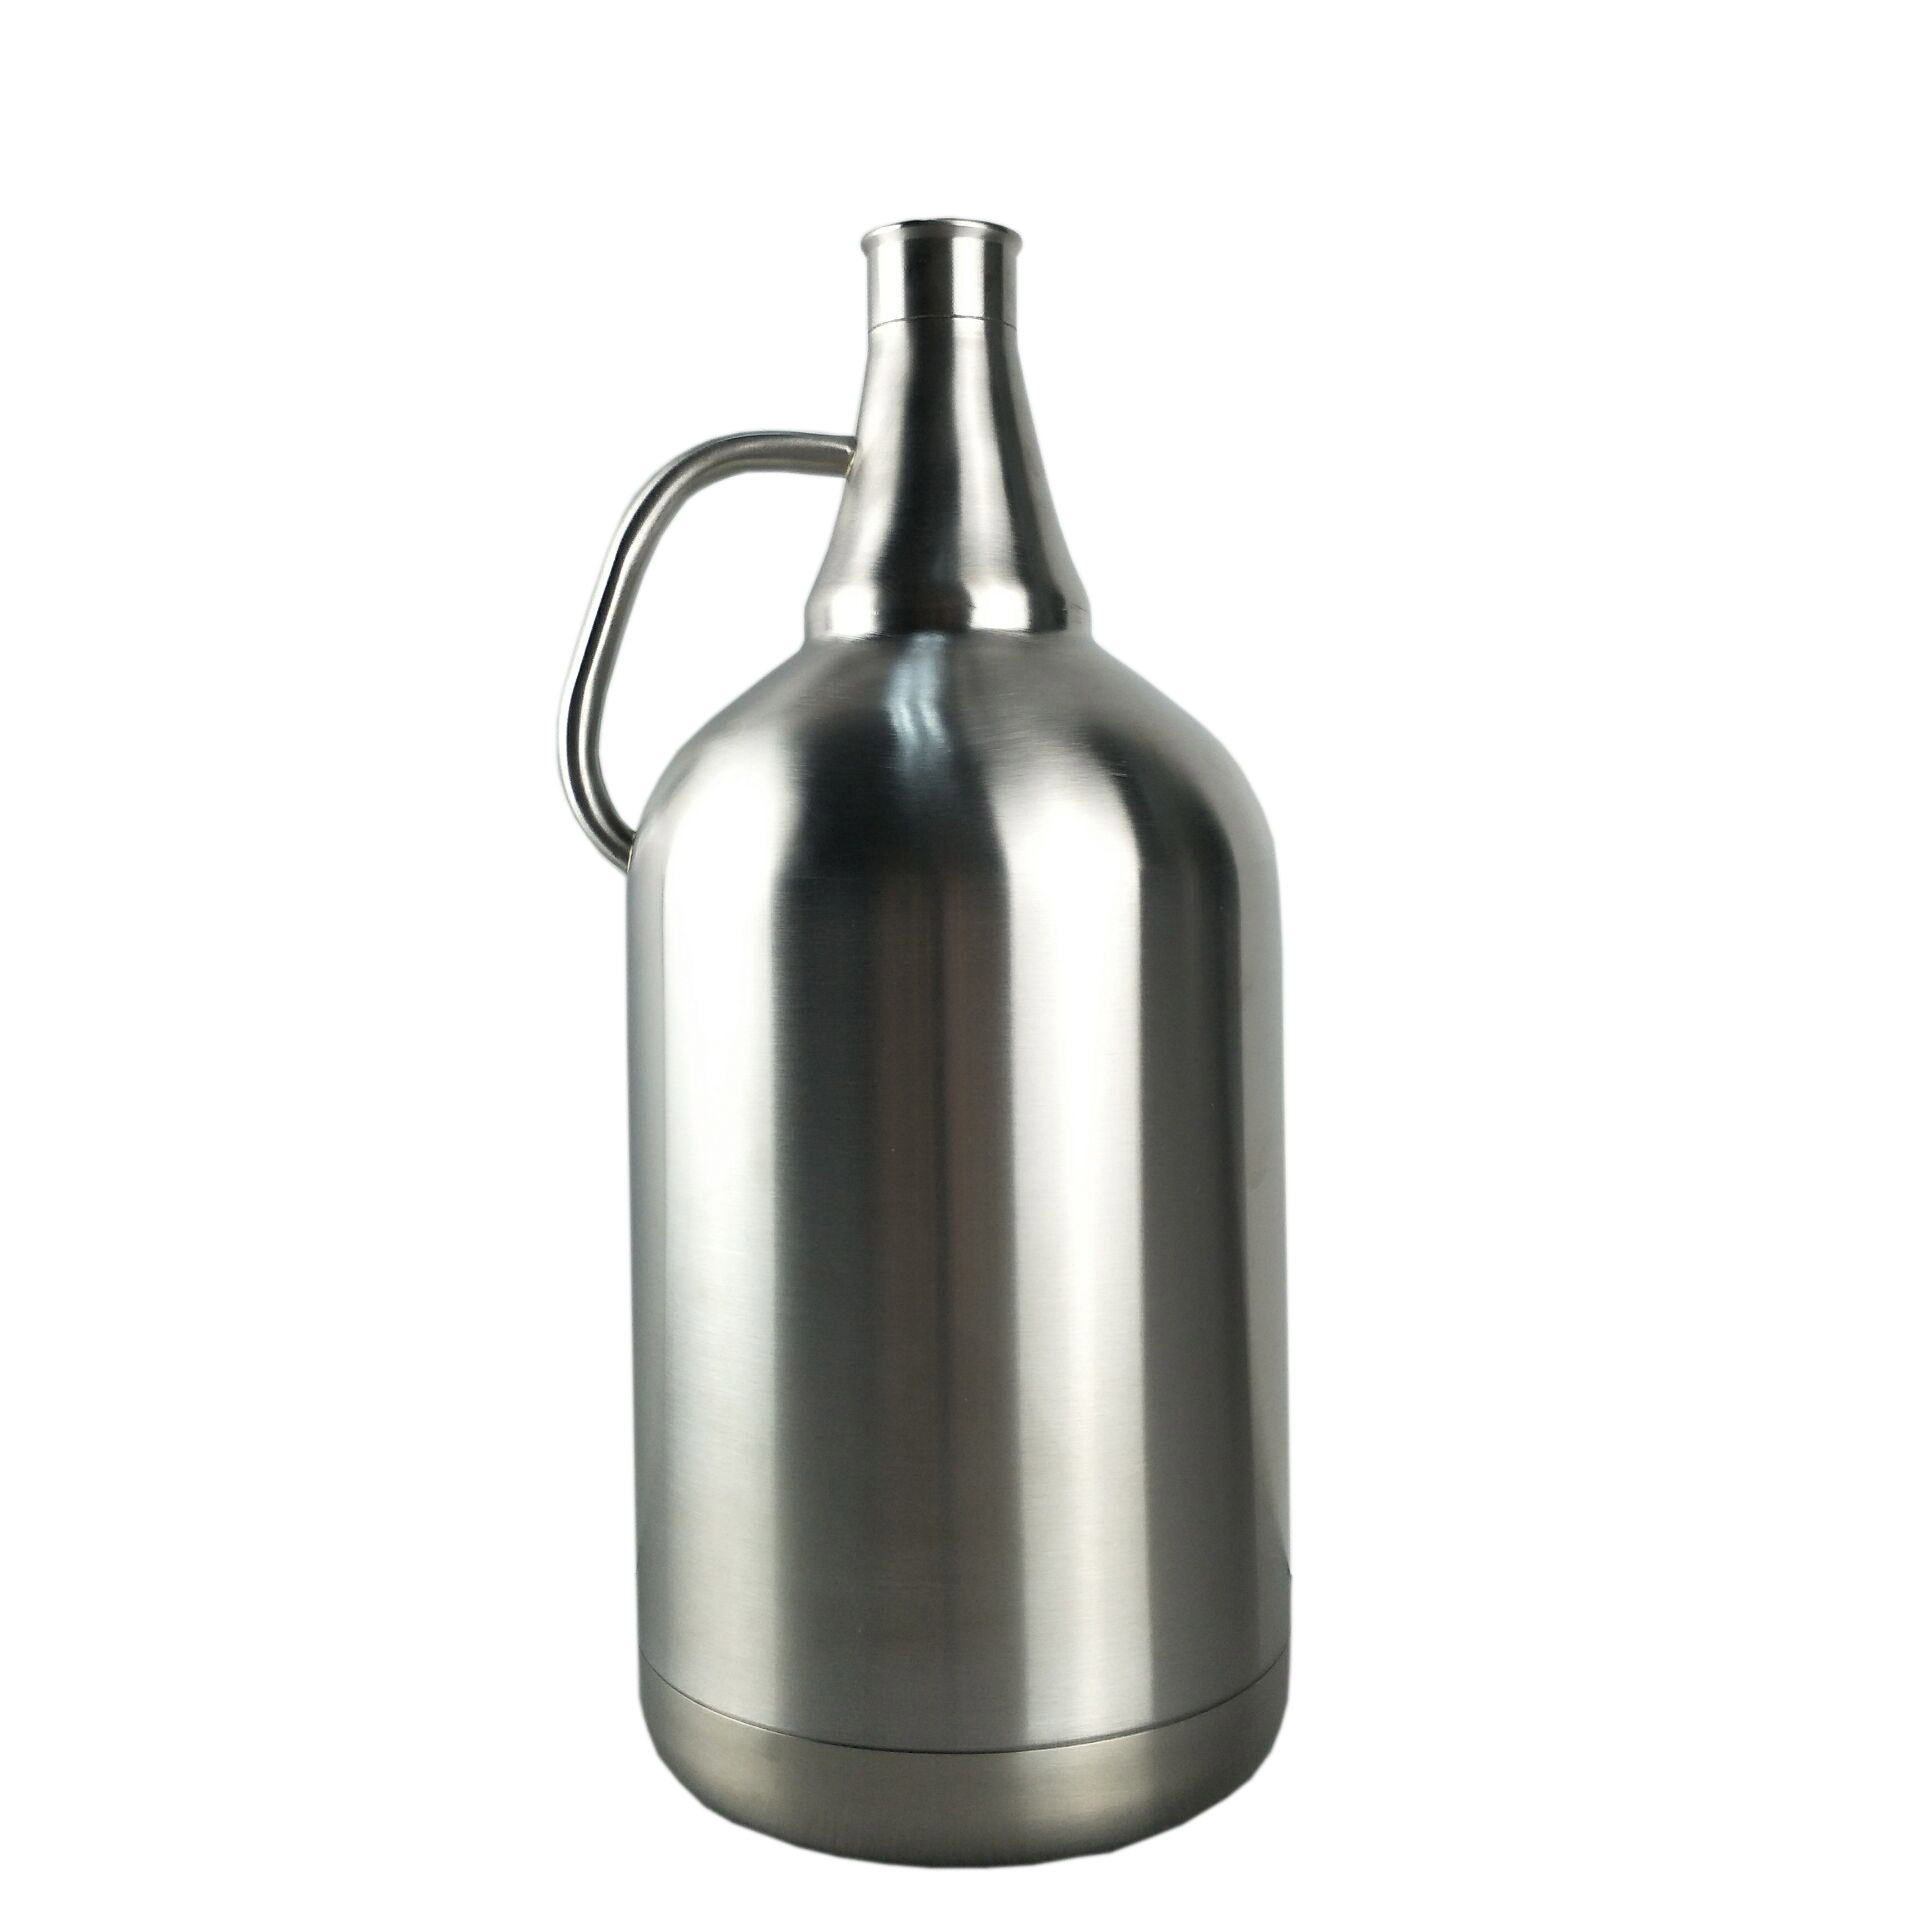 Stainless Steel 1 Gallon Growler With Mini Keg Lid Fit